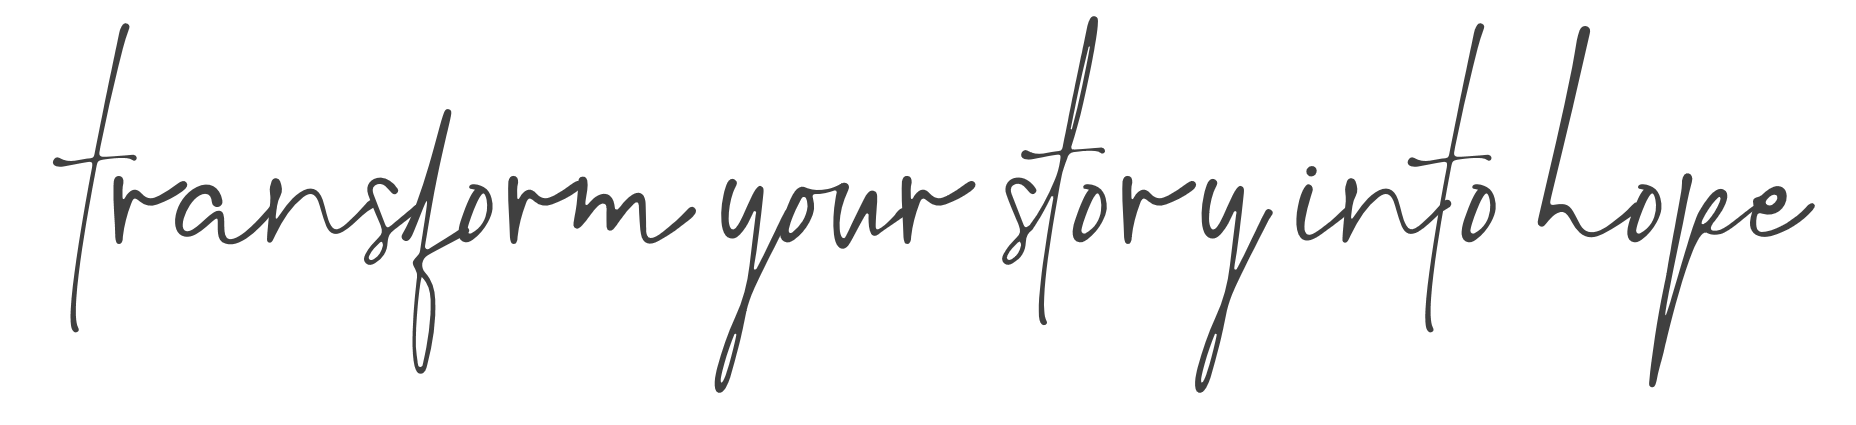 transform your story into hope